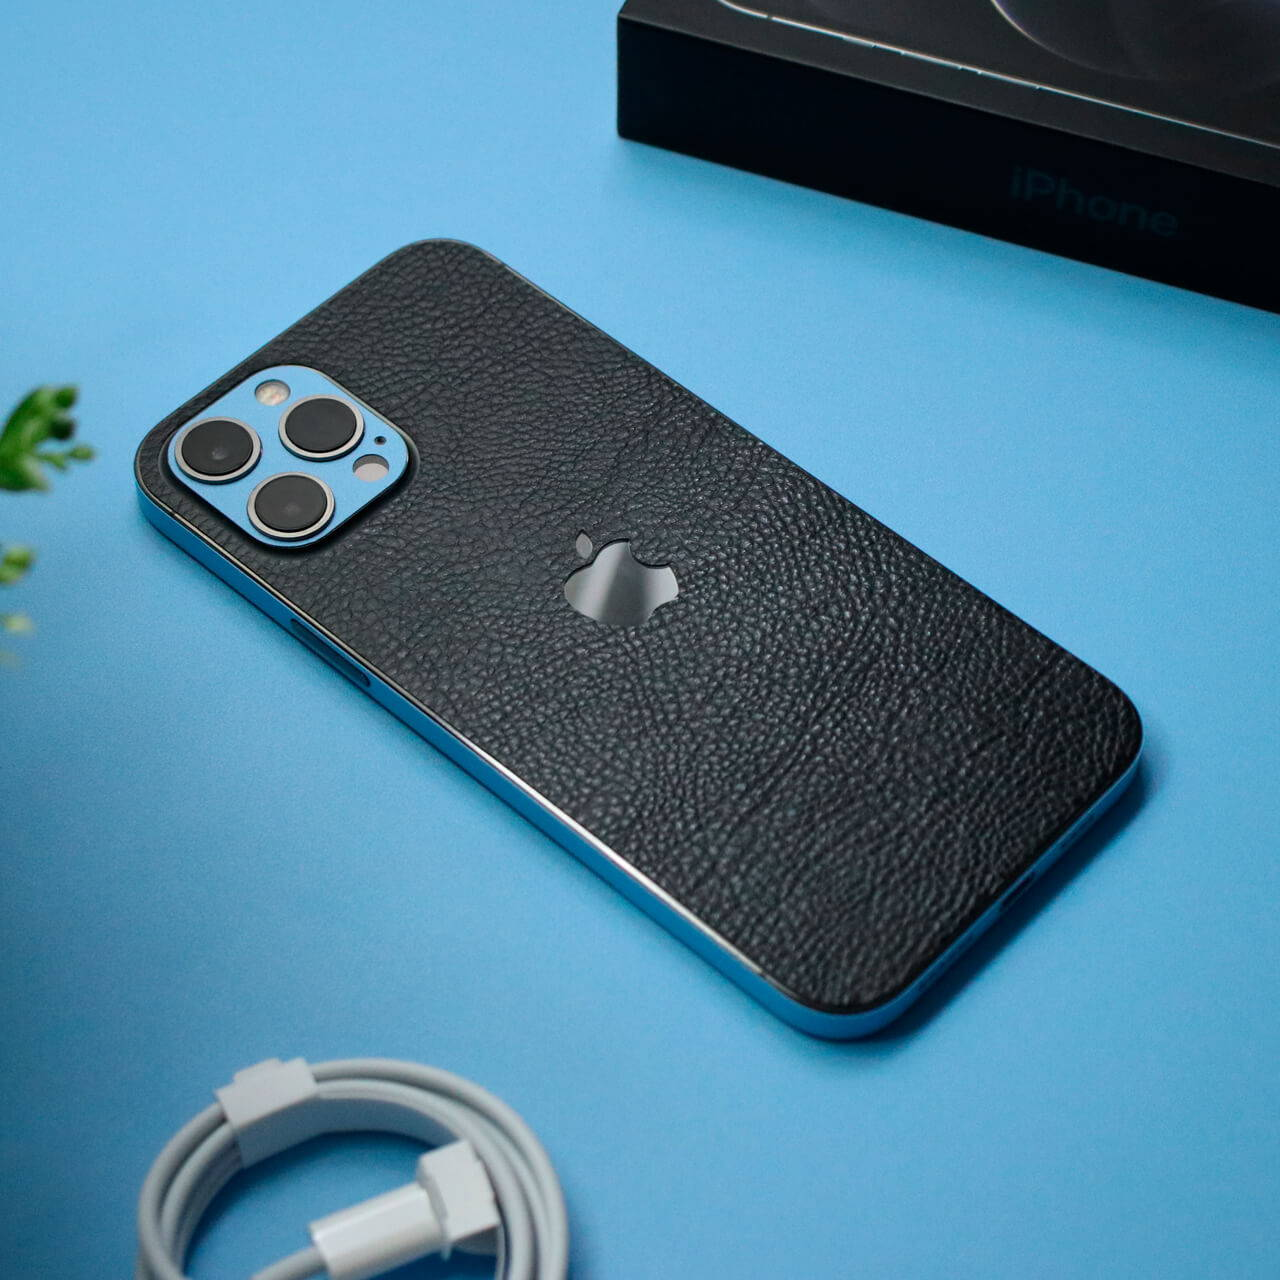 iPhone 12 Pro Max Black leather skins